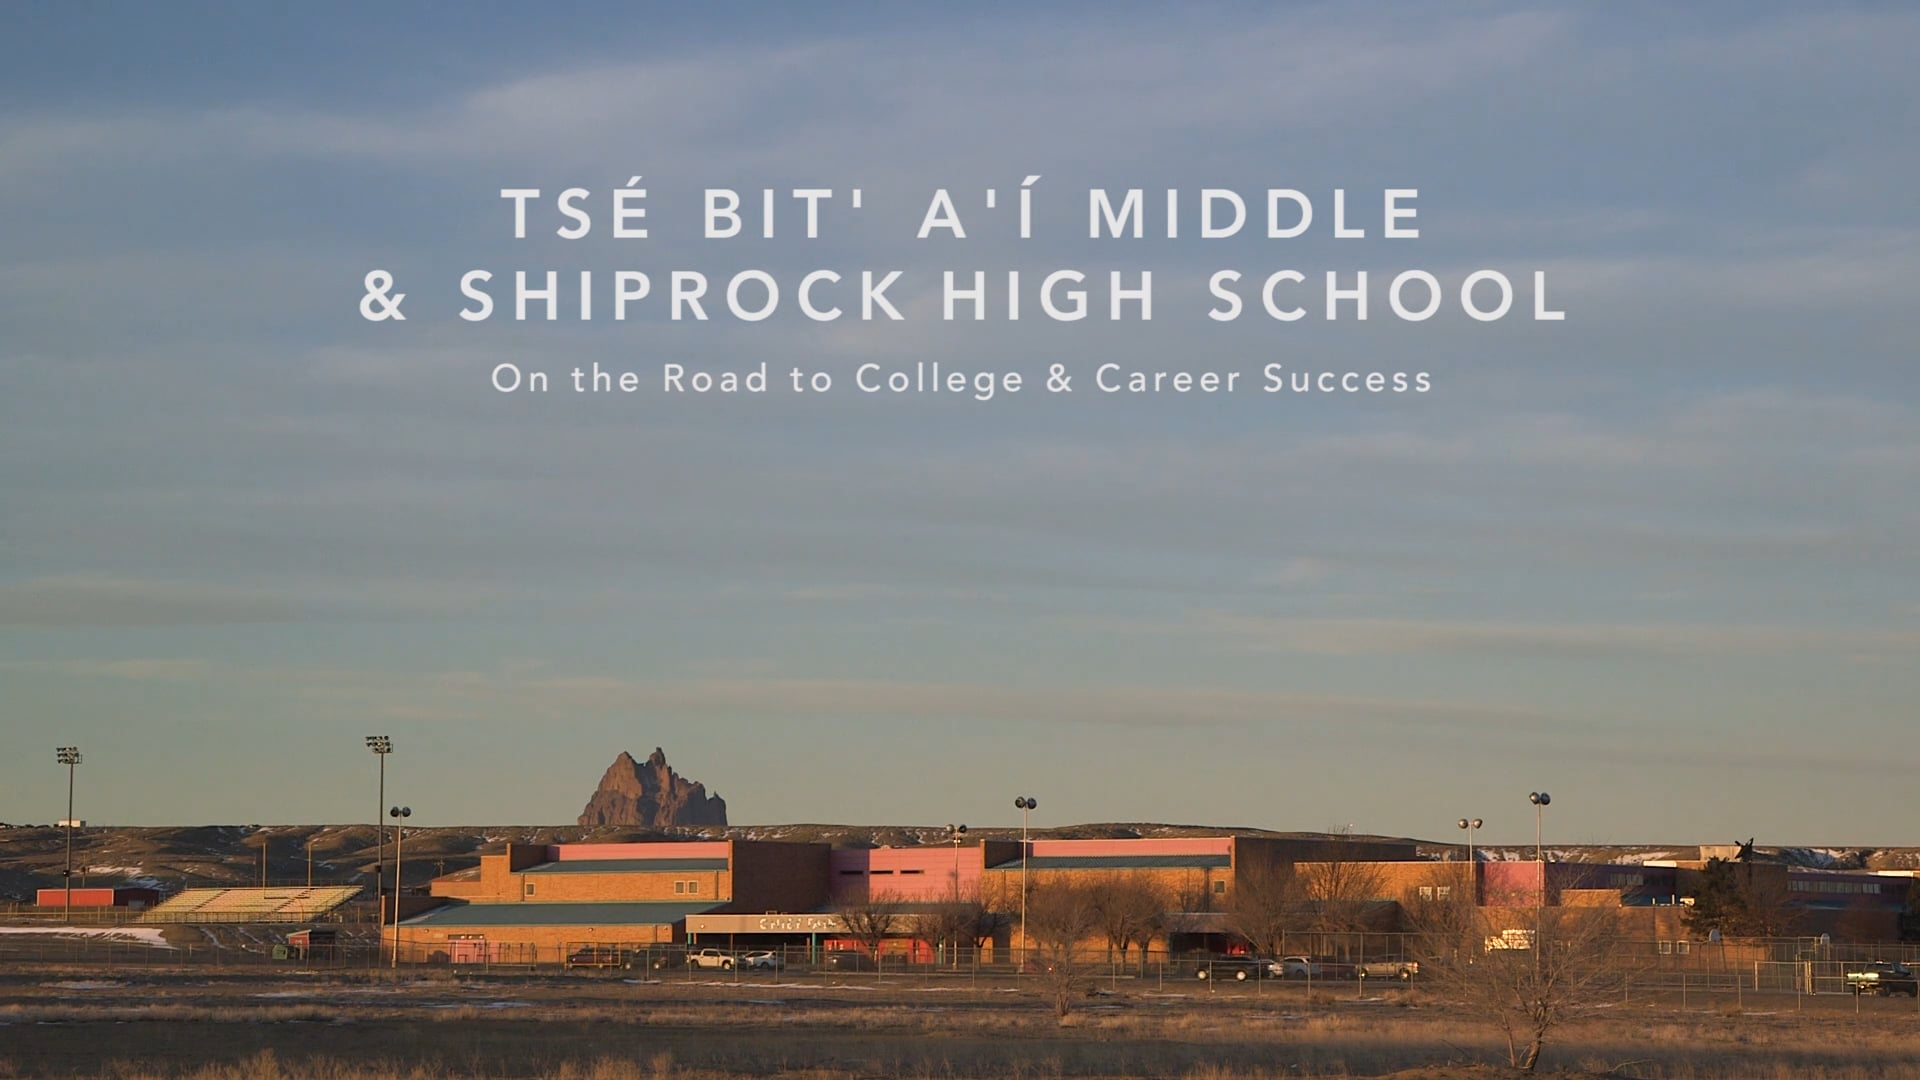 Tsé Bit'a'í Middle & Shiprock High School: On the Road to College & Career Success